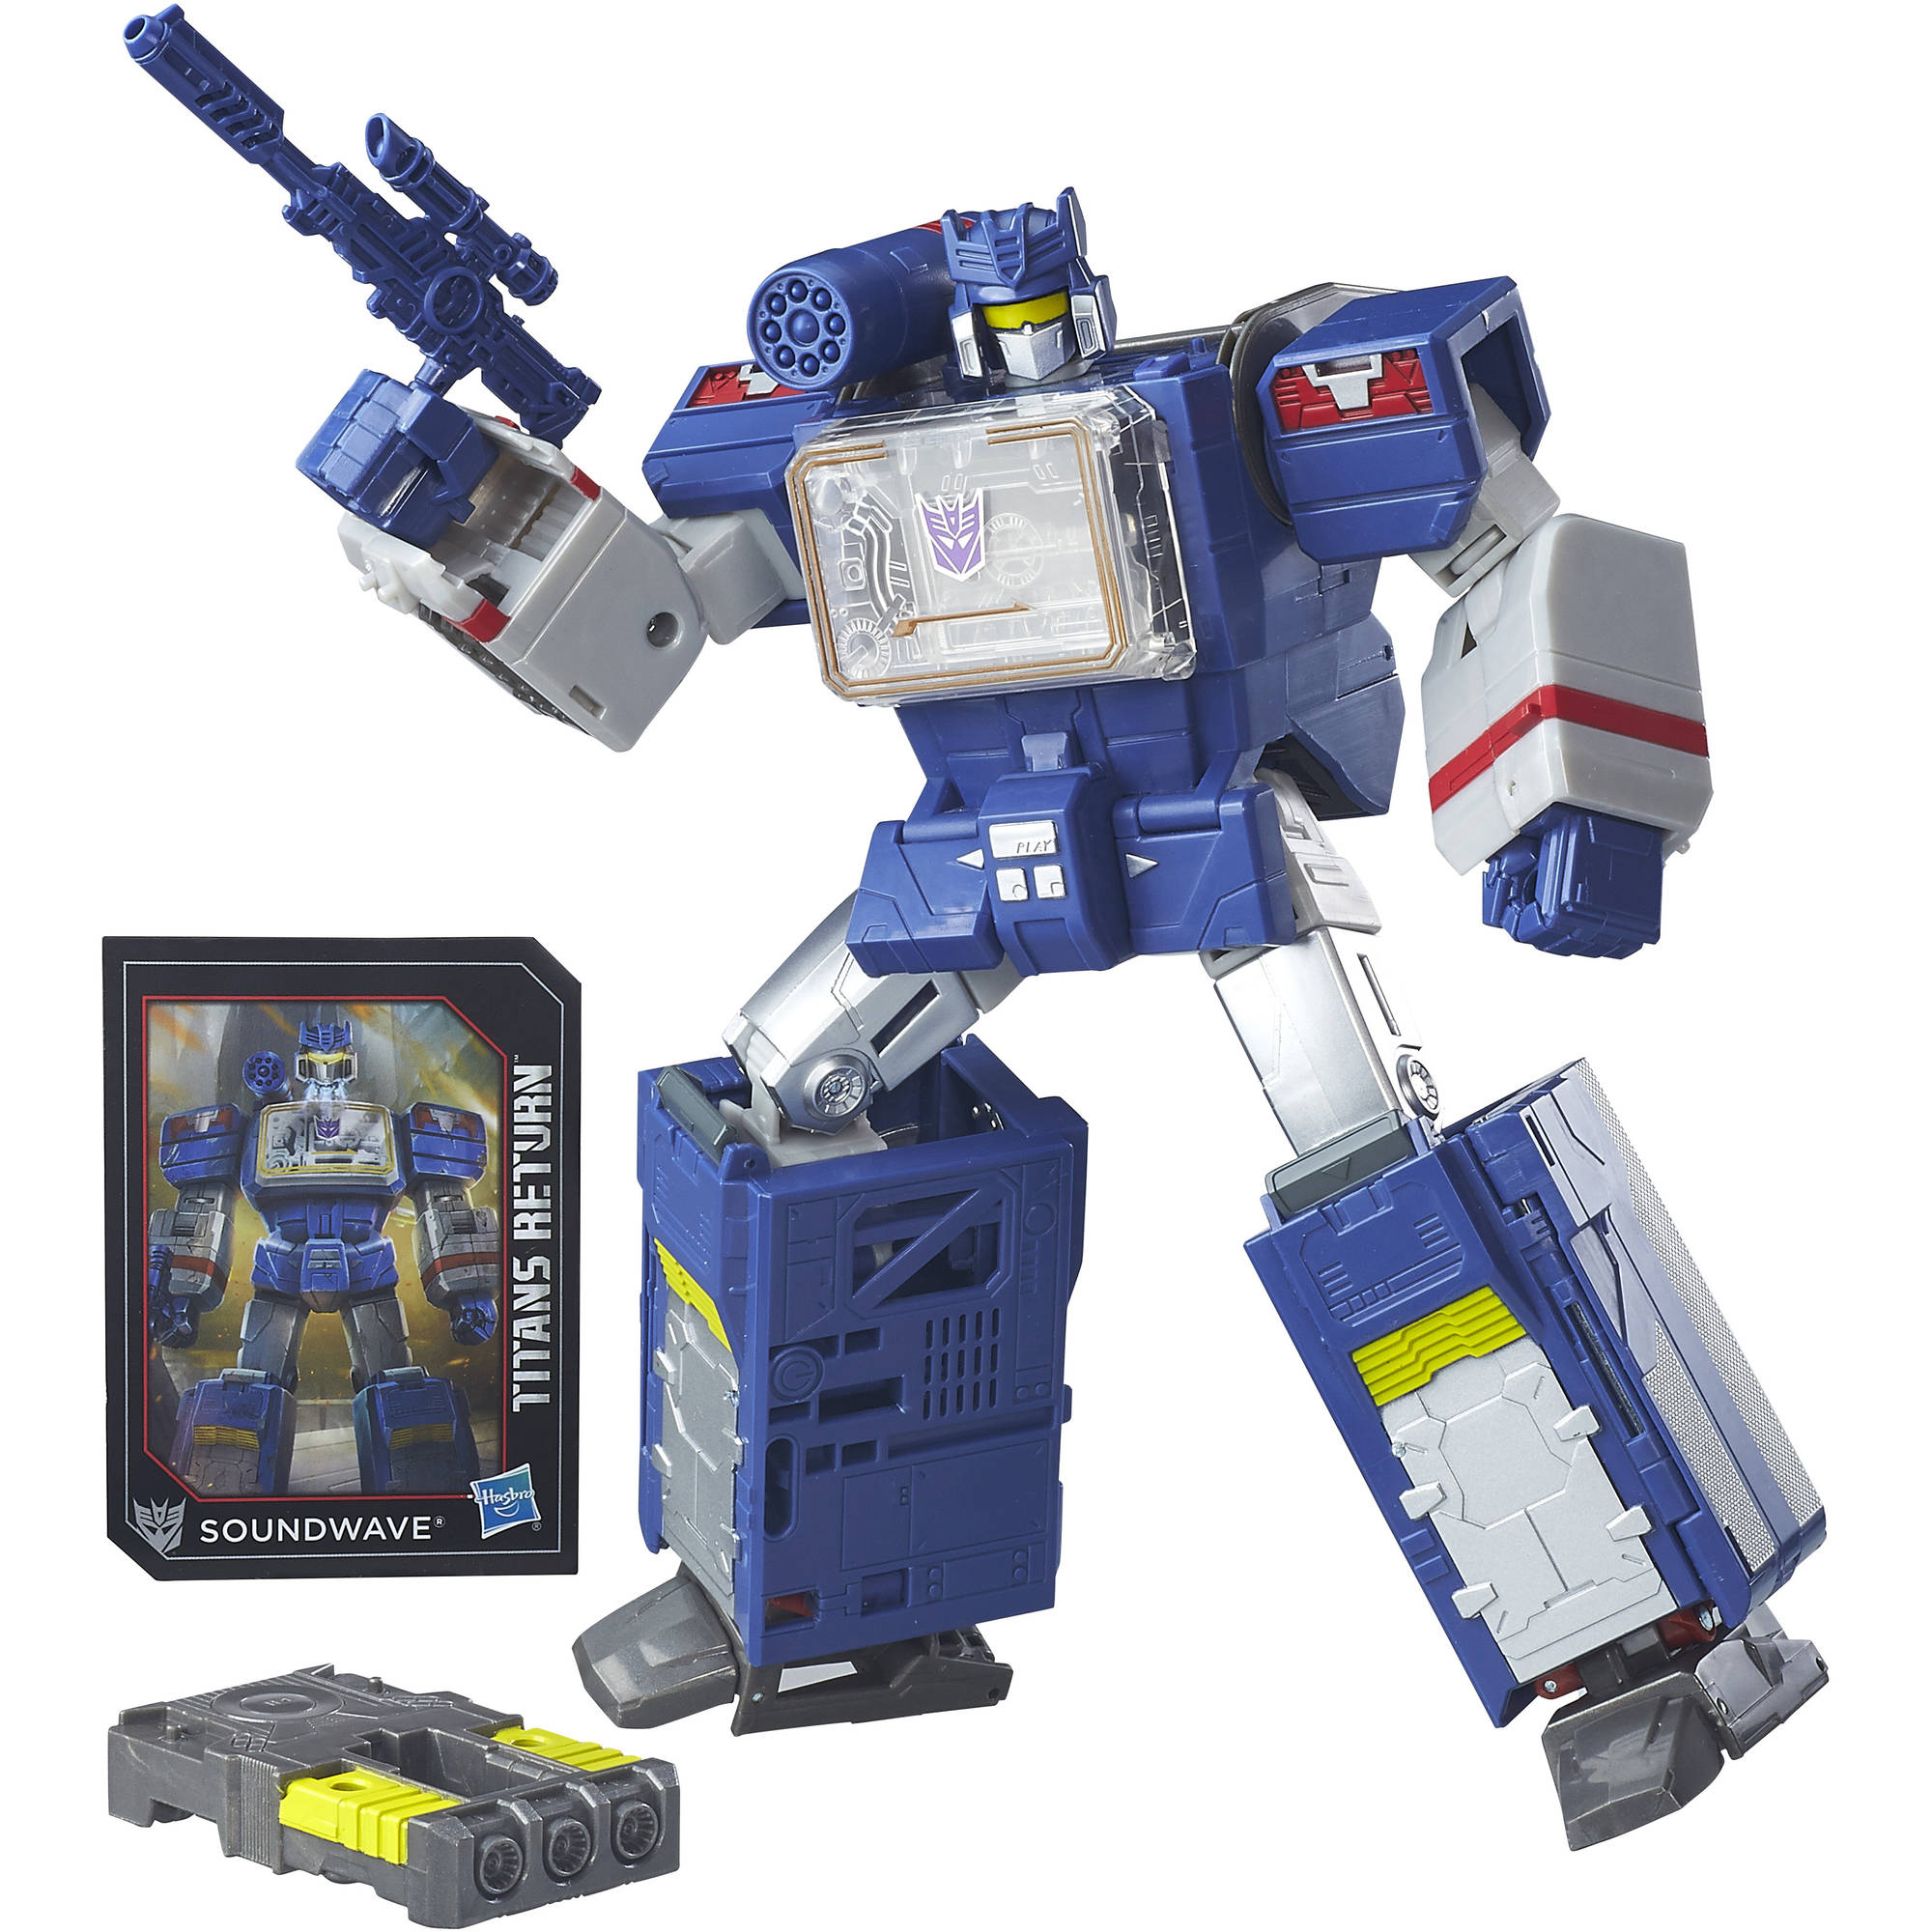 Transformers Generations Titans Return Soundwave and Soundblaster by Hasbro